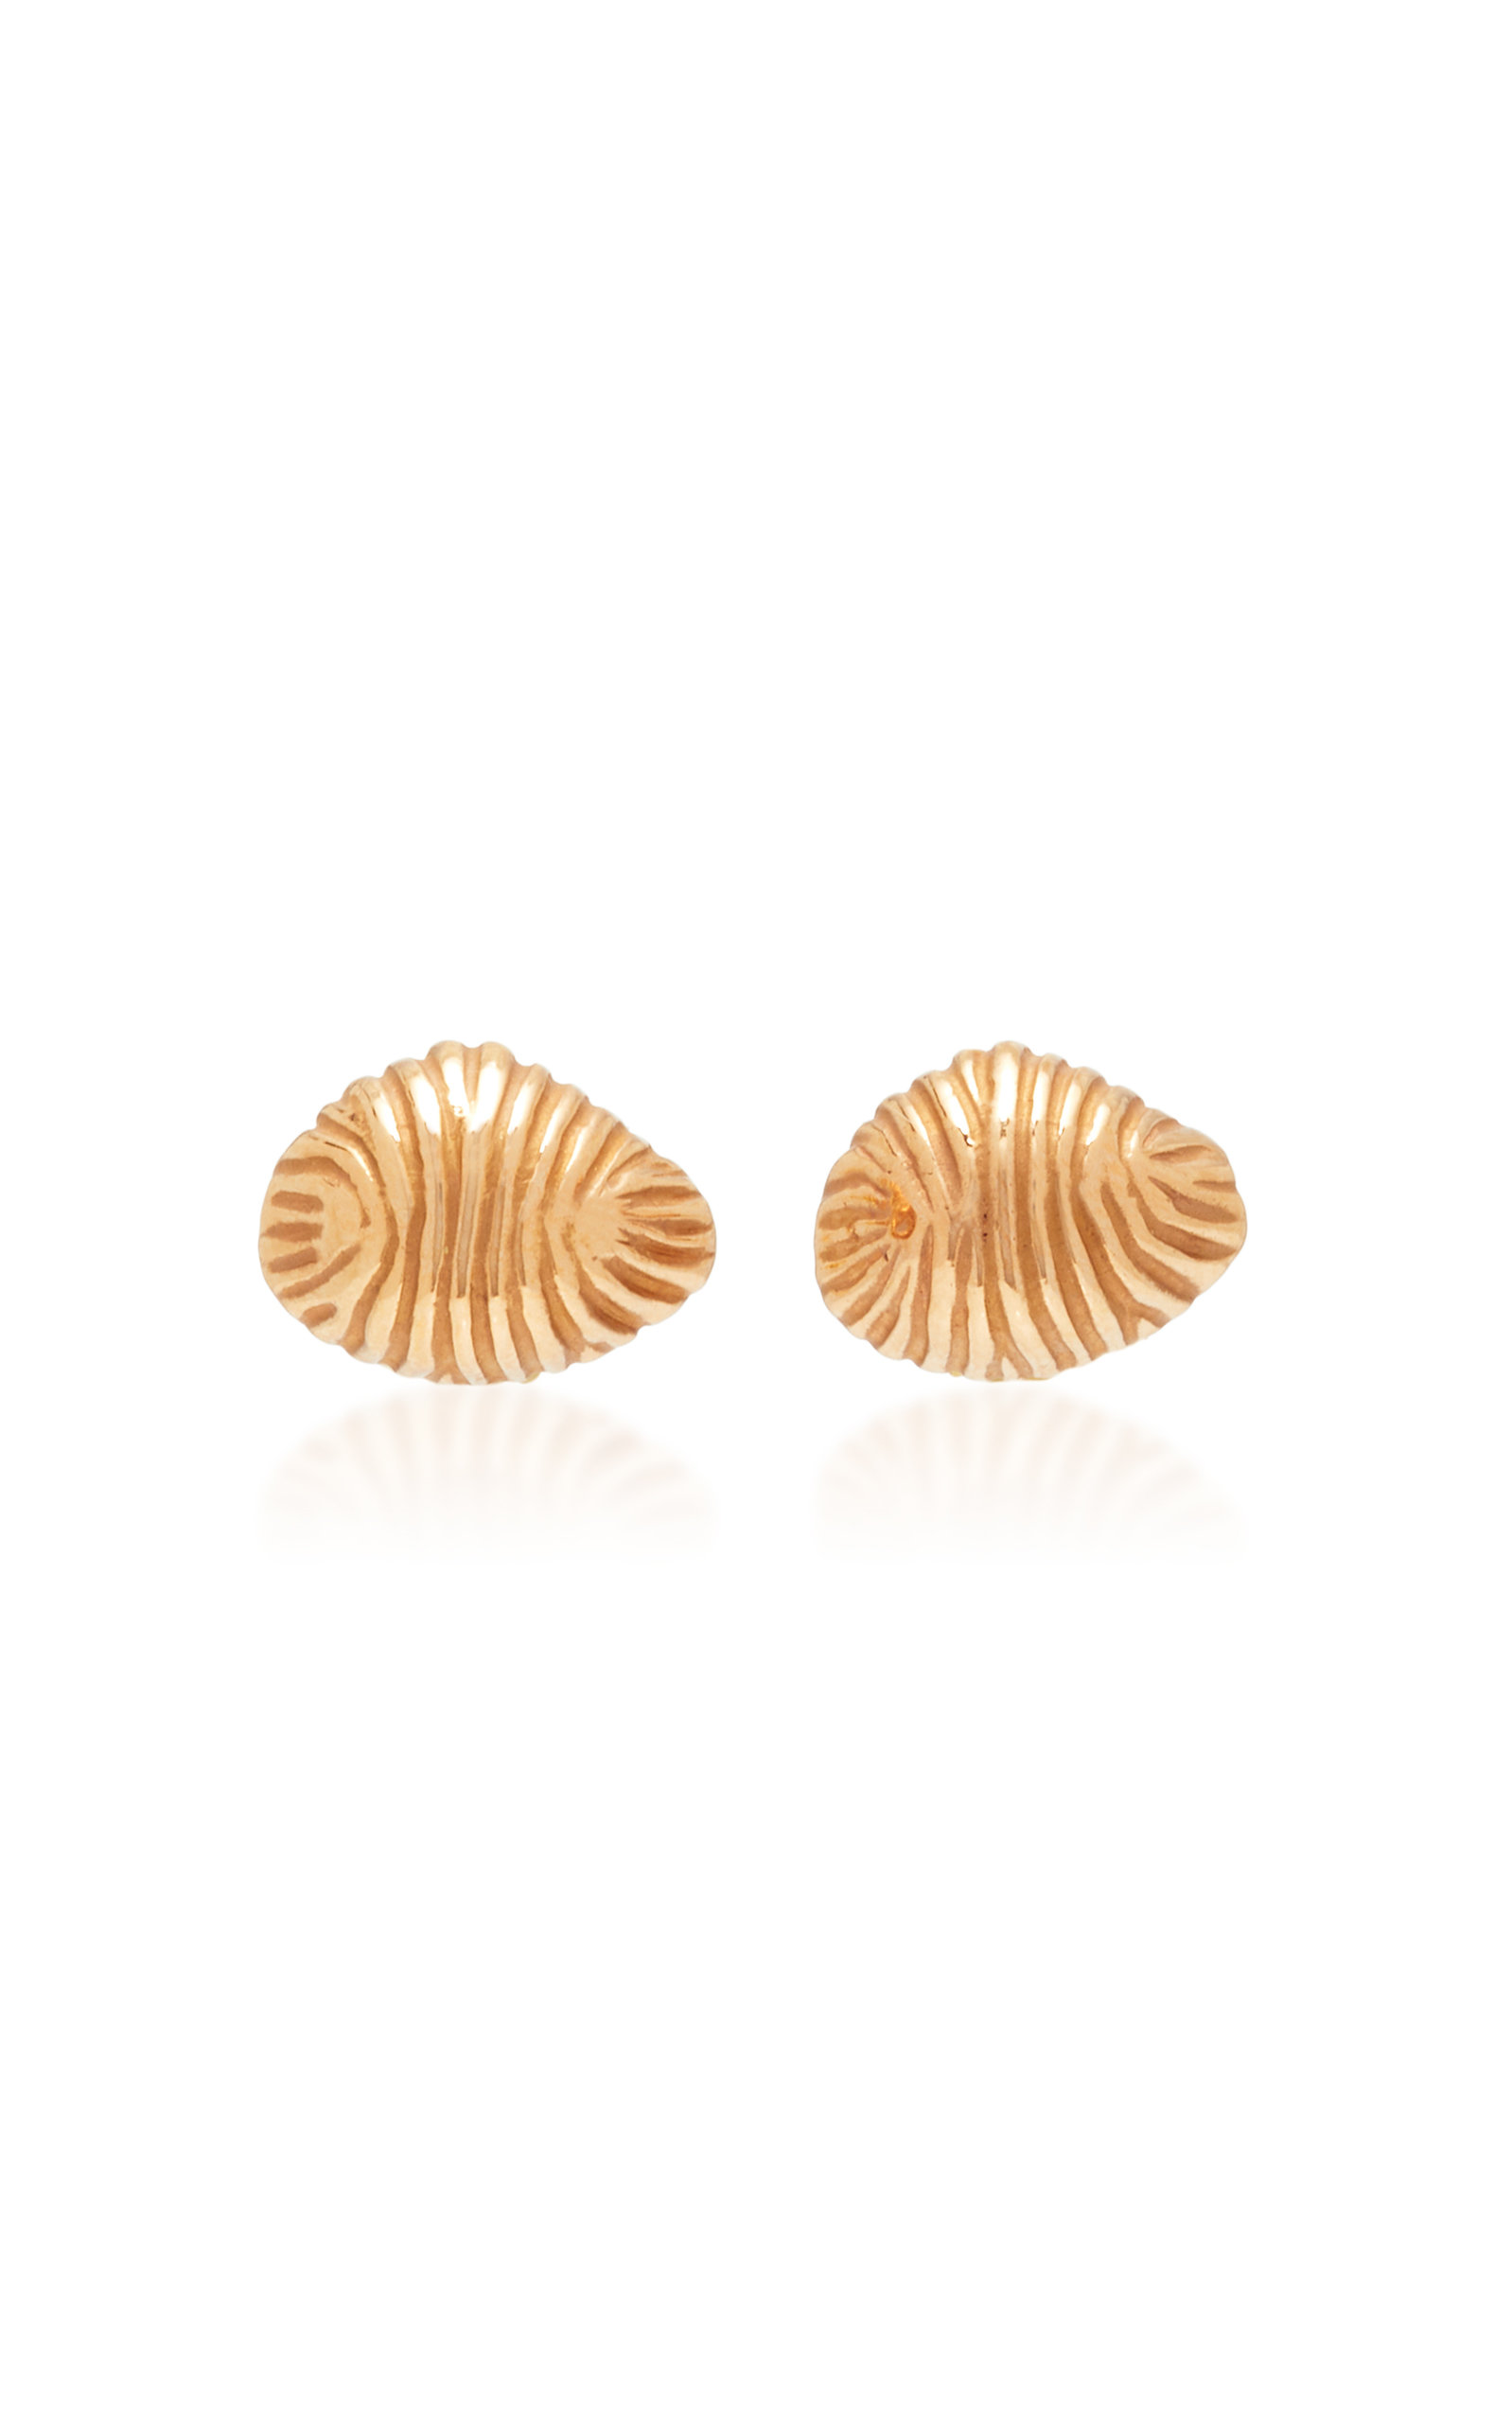 ESSENTIAL SHELL STUDS